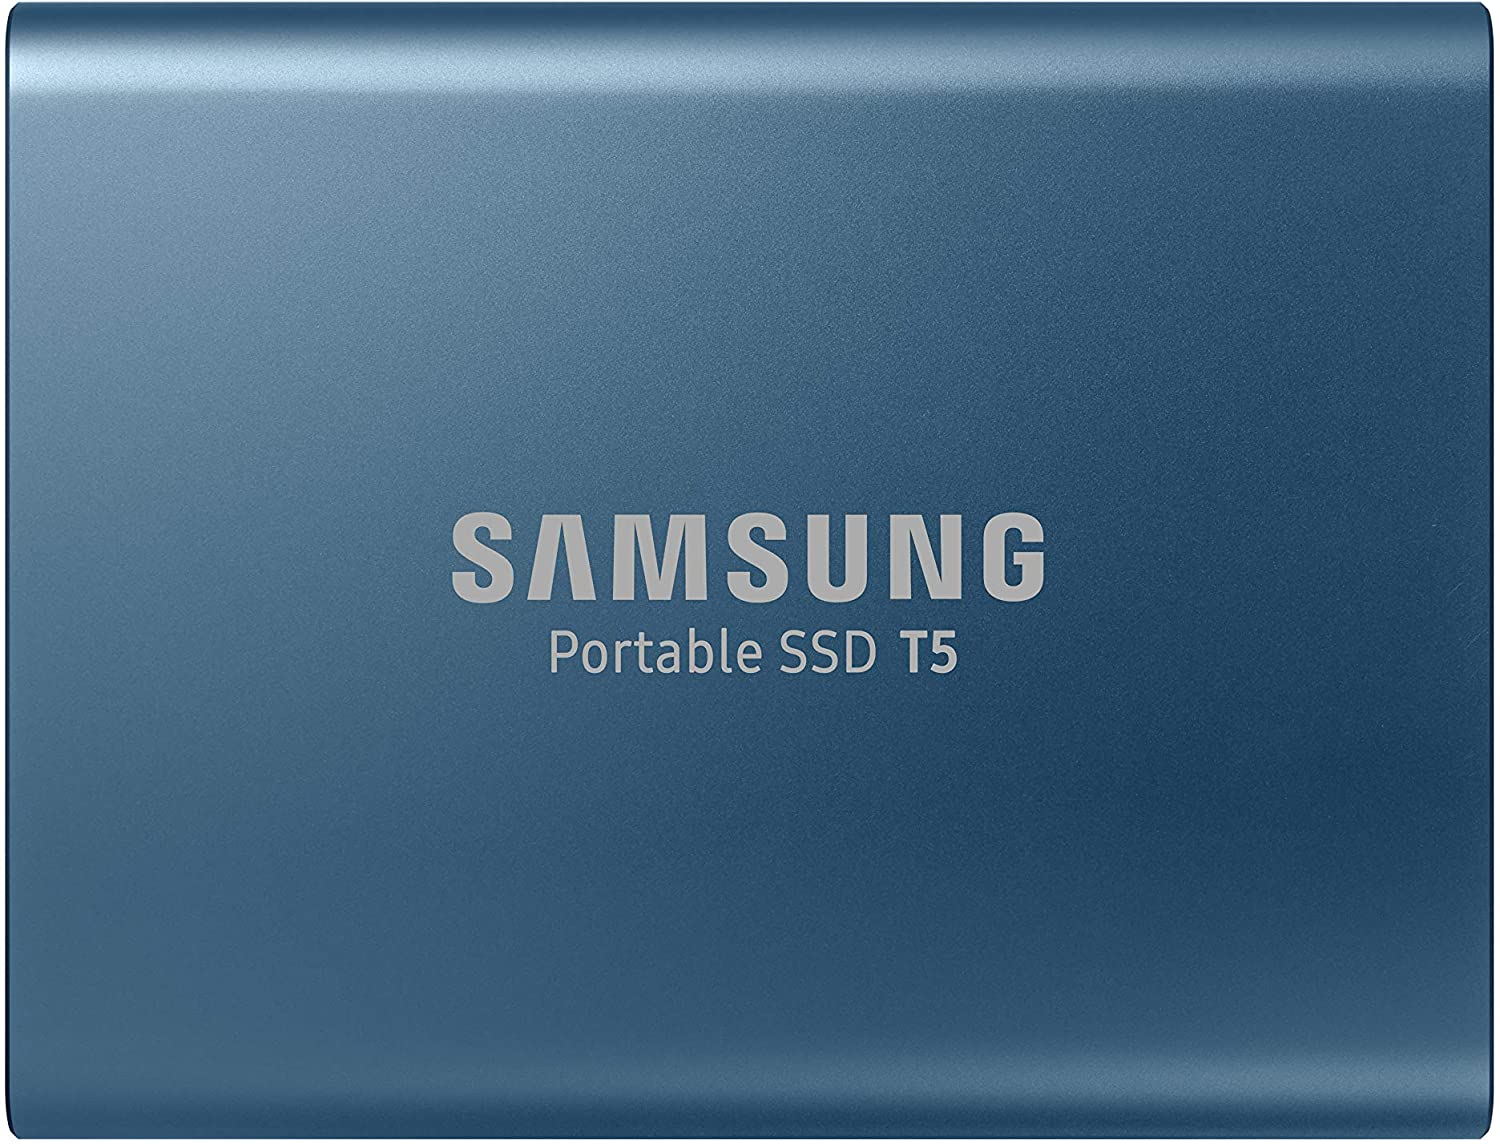 SAMSUNG T5 Portable SSD 500GB - Up to 540MB/s - USB 3.1 External Solid State Drive